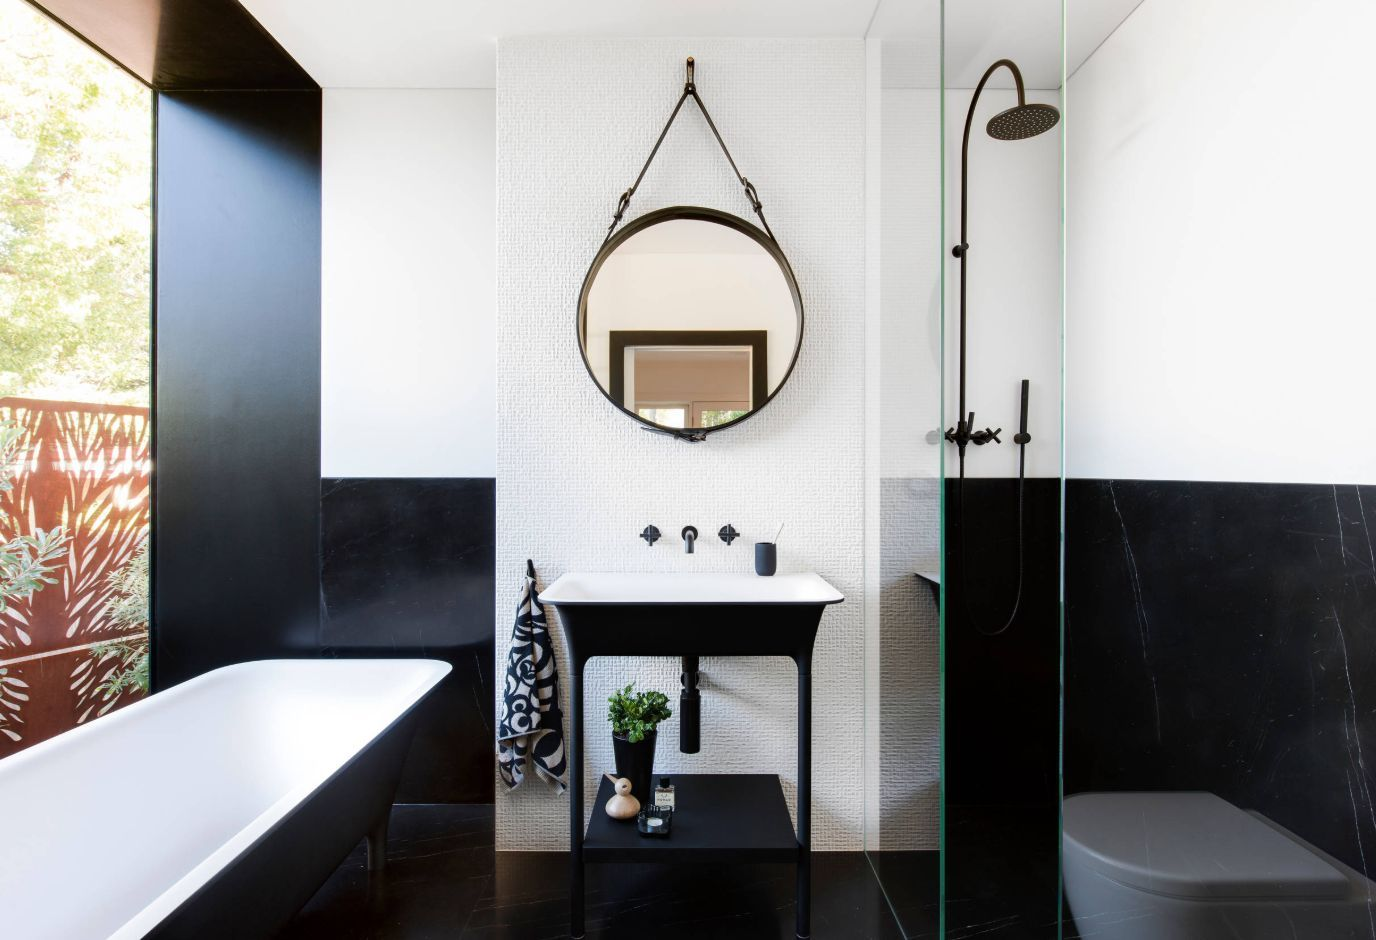 1558953966 845 black and white bathroom designs that show simple can also be interesting - Black and White Bathroom Designs That Show Simple Can Also Be Interesting